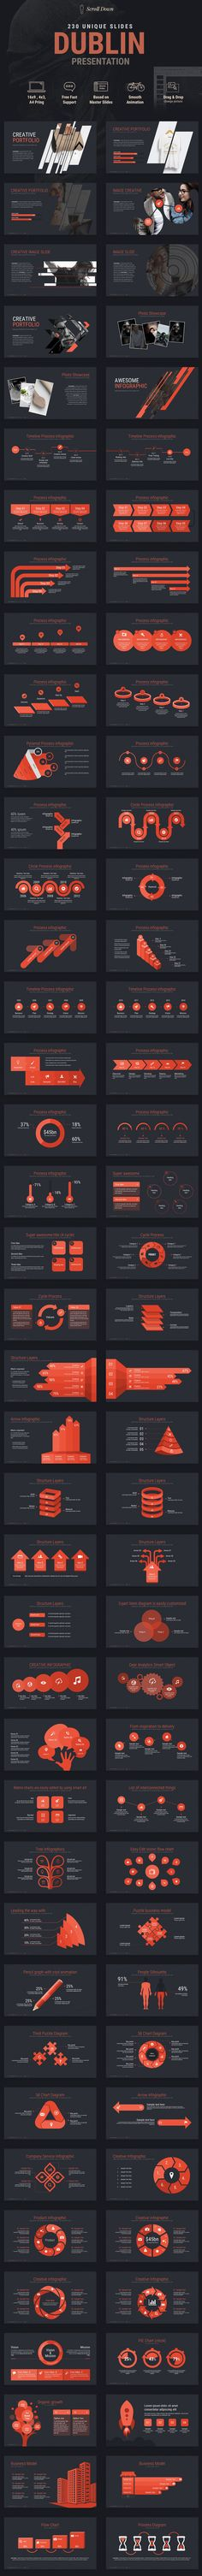 Twilight - PowerPoint Template Twilight, Templates and Presentation - new jungle powerpoint template